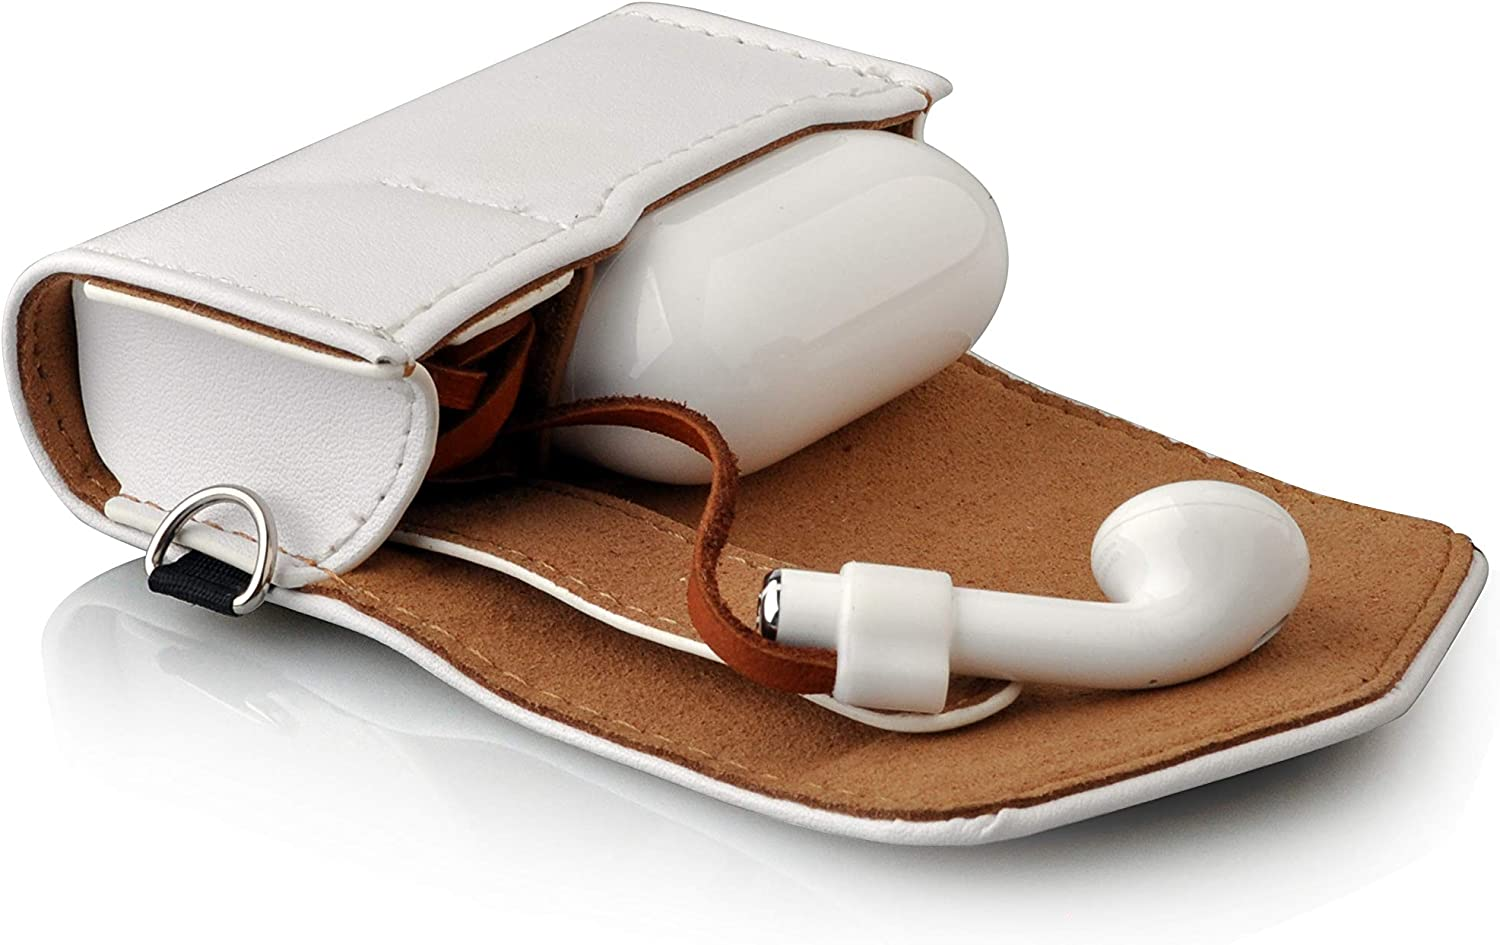 Rose Gold Thanksacase Embossed Pattern PU Leather Case 2 in 1 Combo Magnet Closure Cover for Apple AirPods and Airpods Strap. Airpods Case